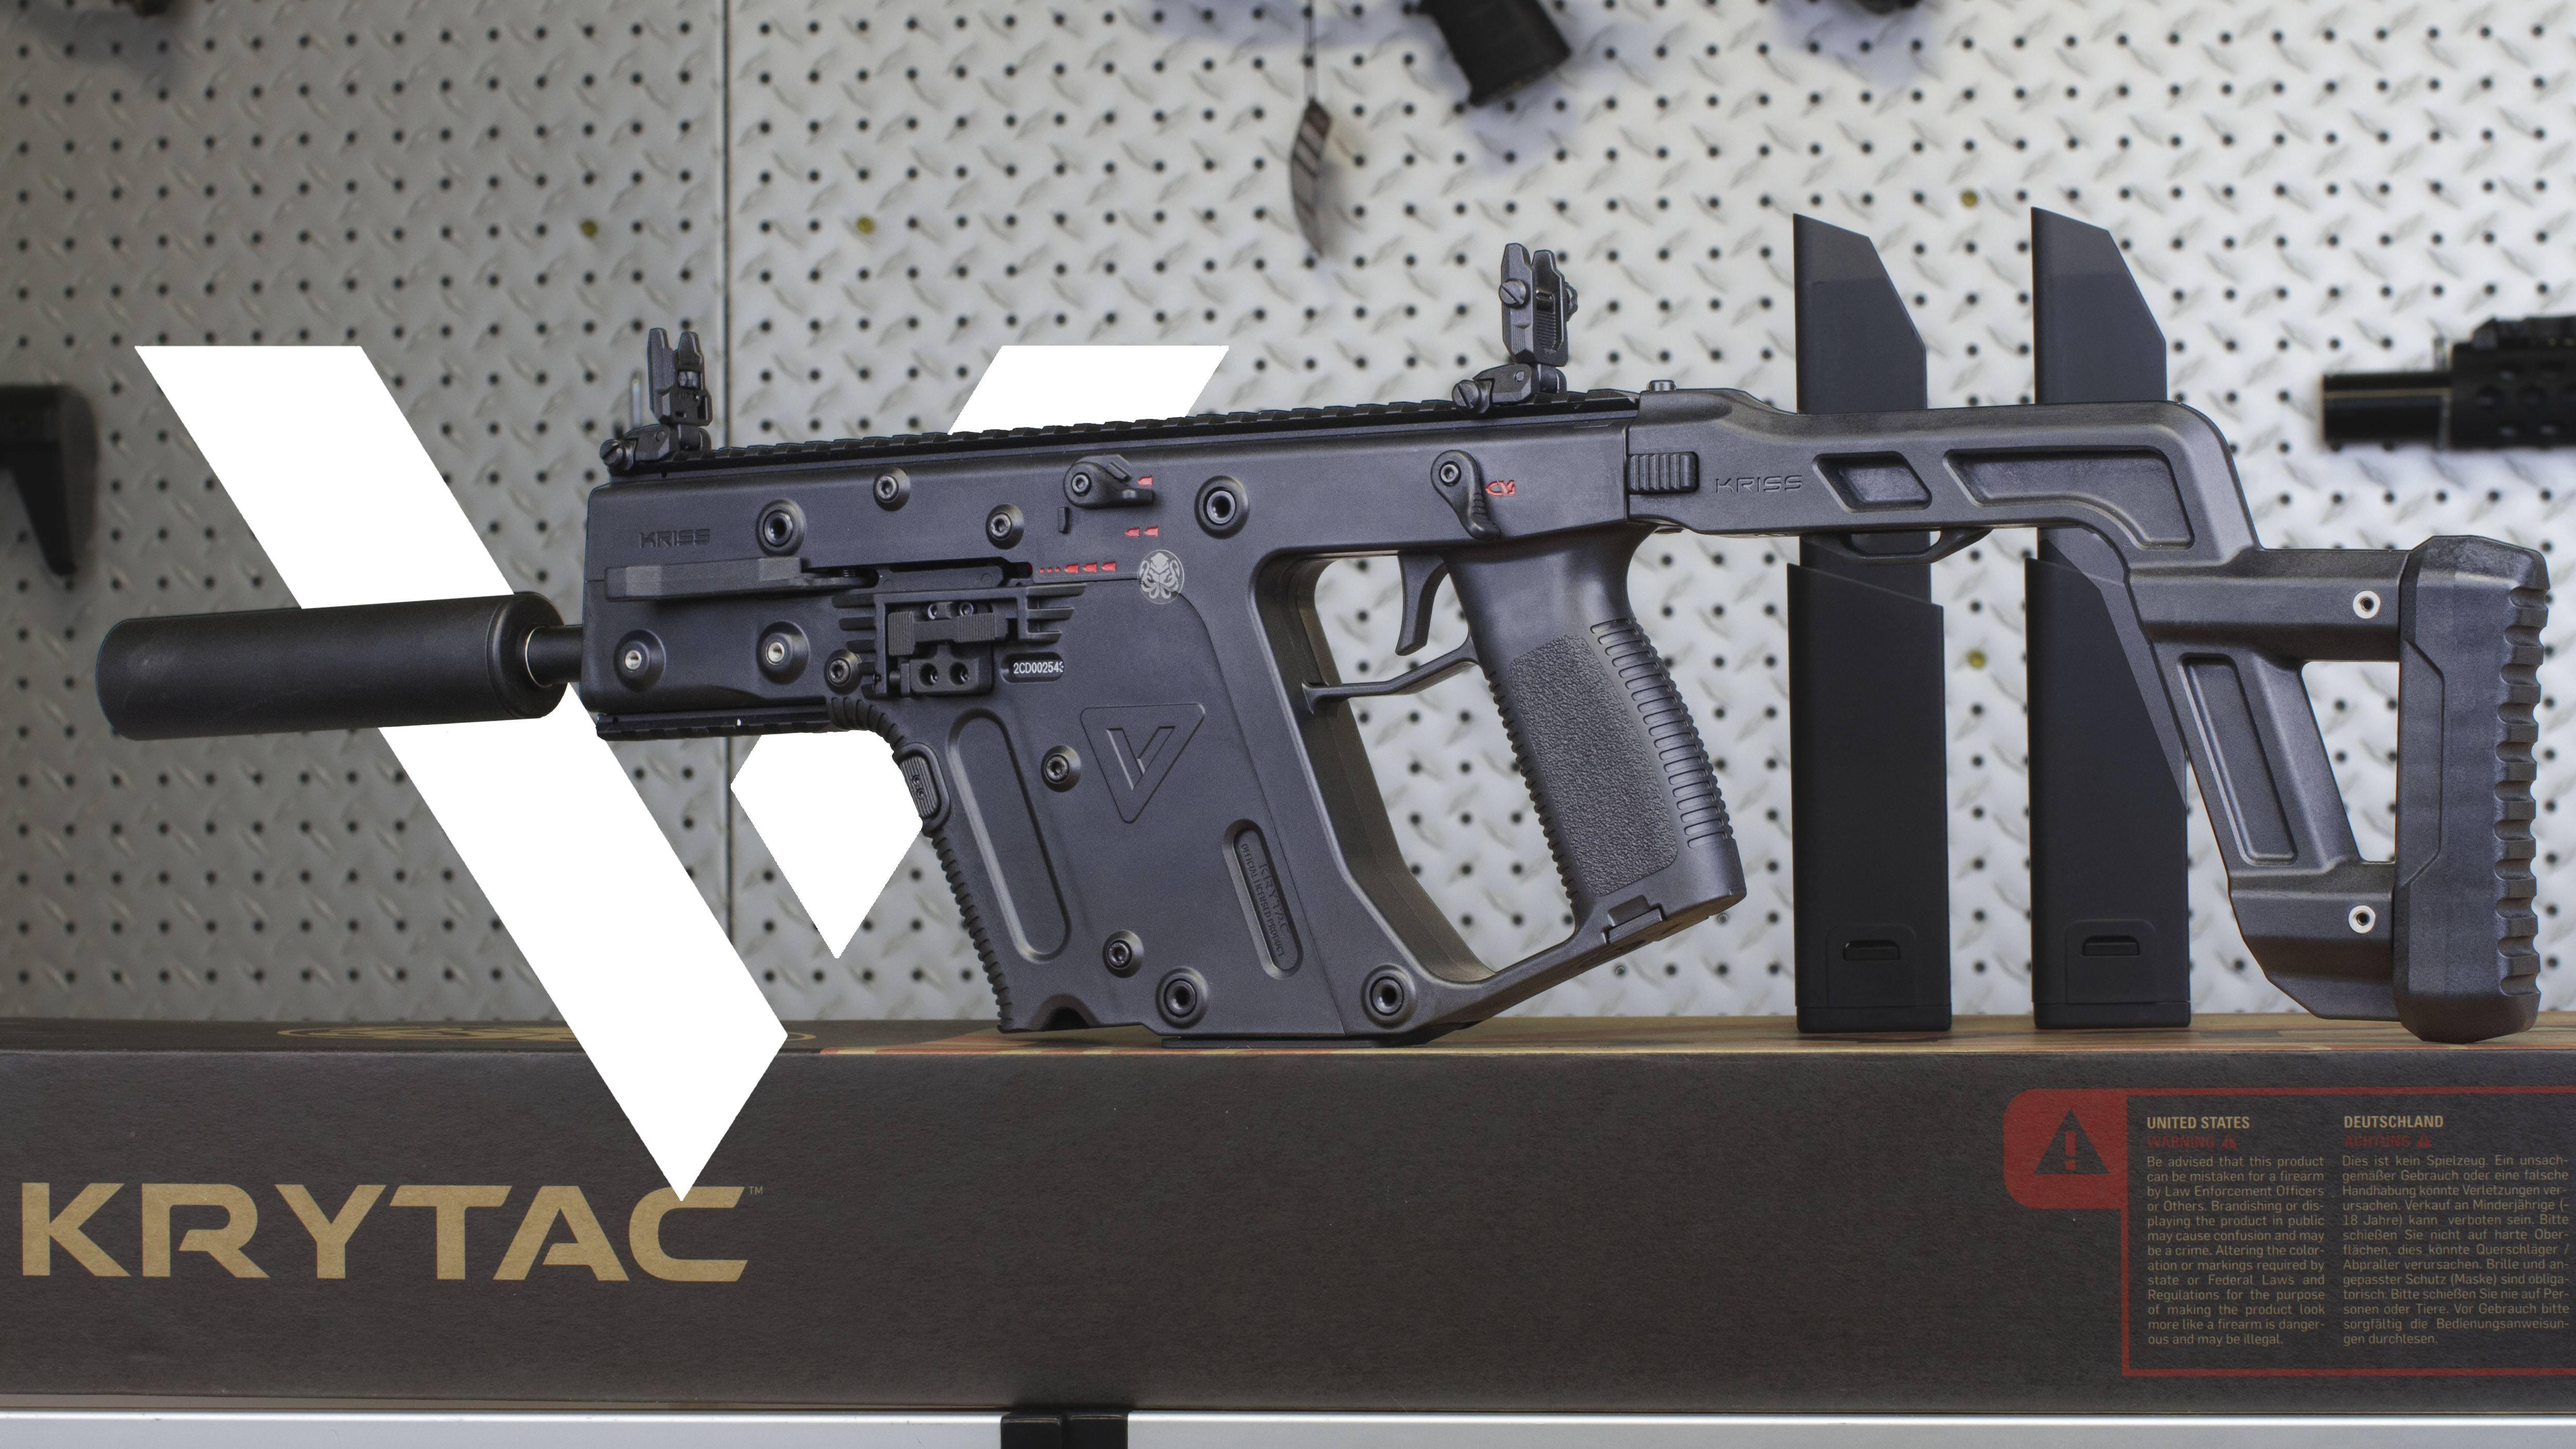 KRYTAC Kriss Vector Officially Licensed AEG - Canada Version